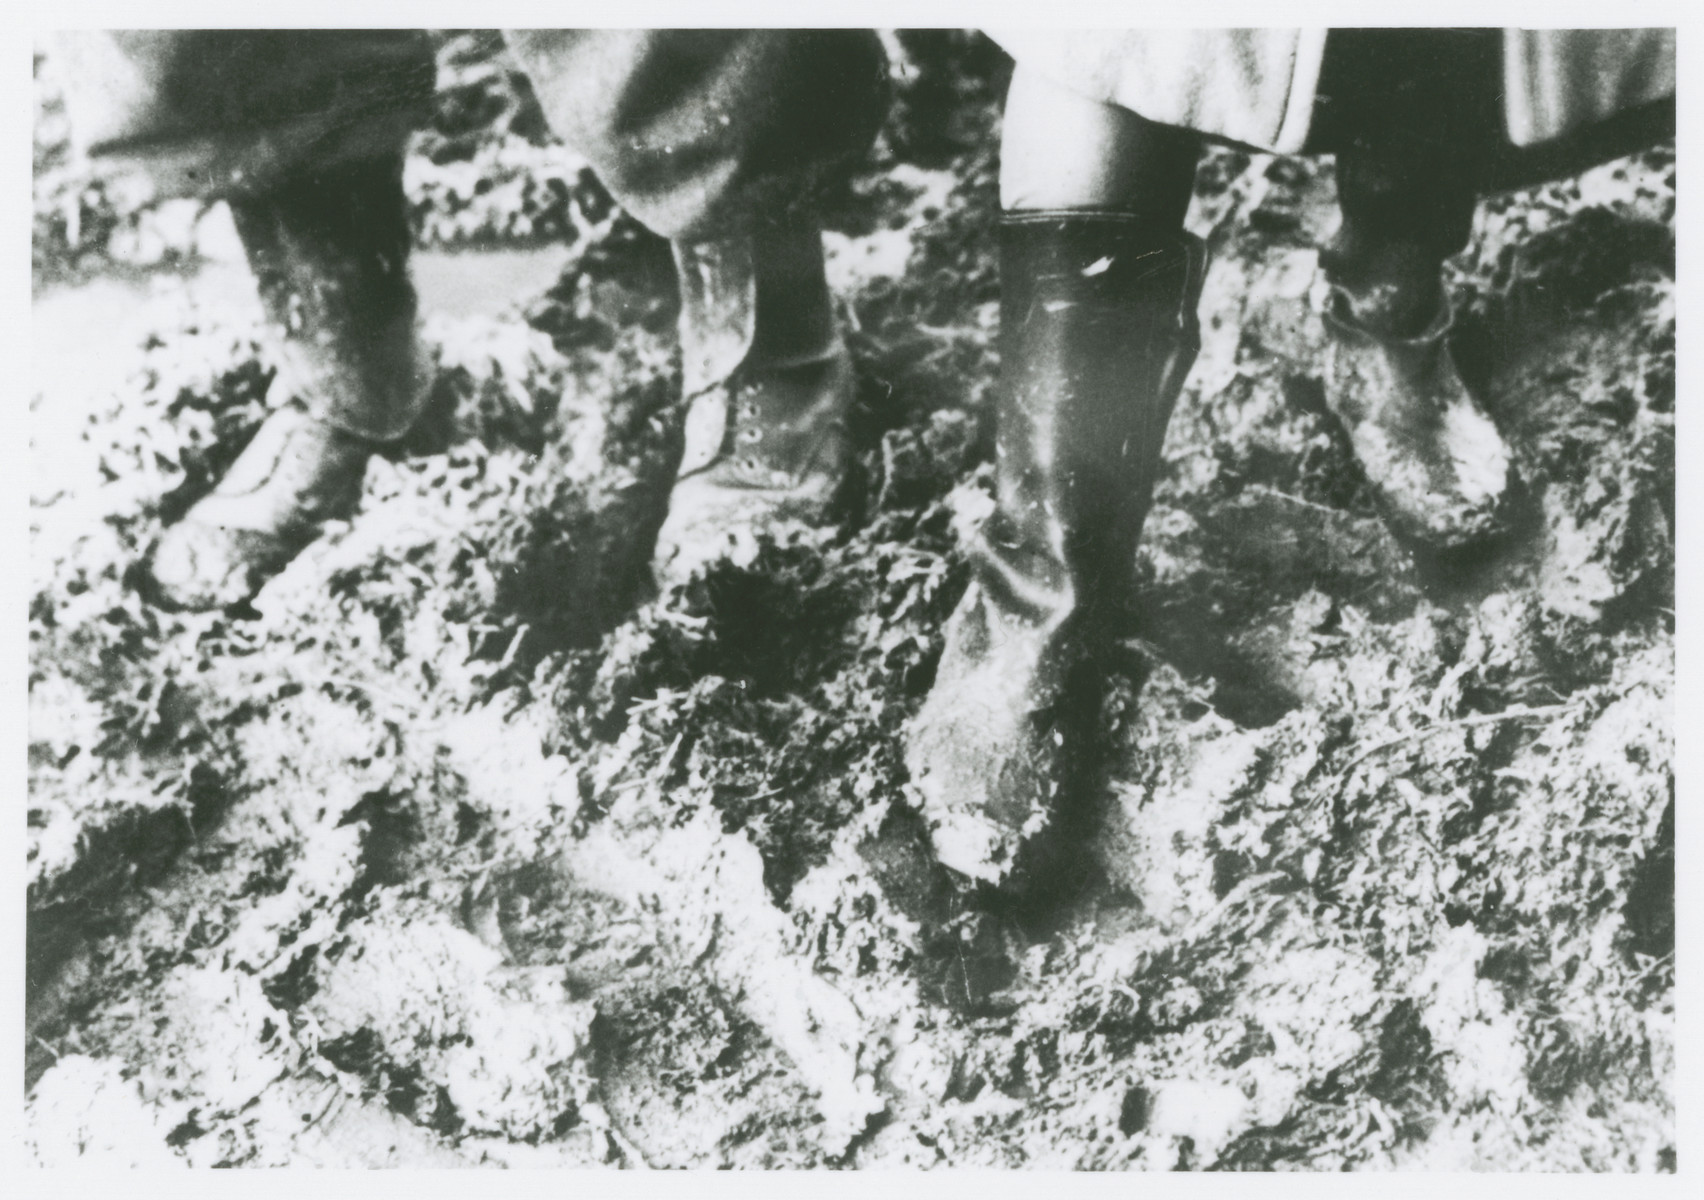 Close-up of the feet of two prisoners walking through the mud at the Novaky labor camp.